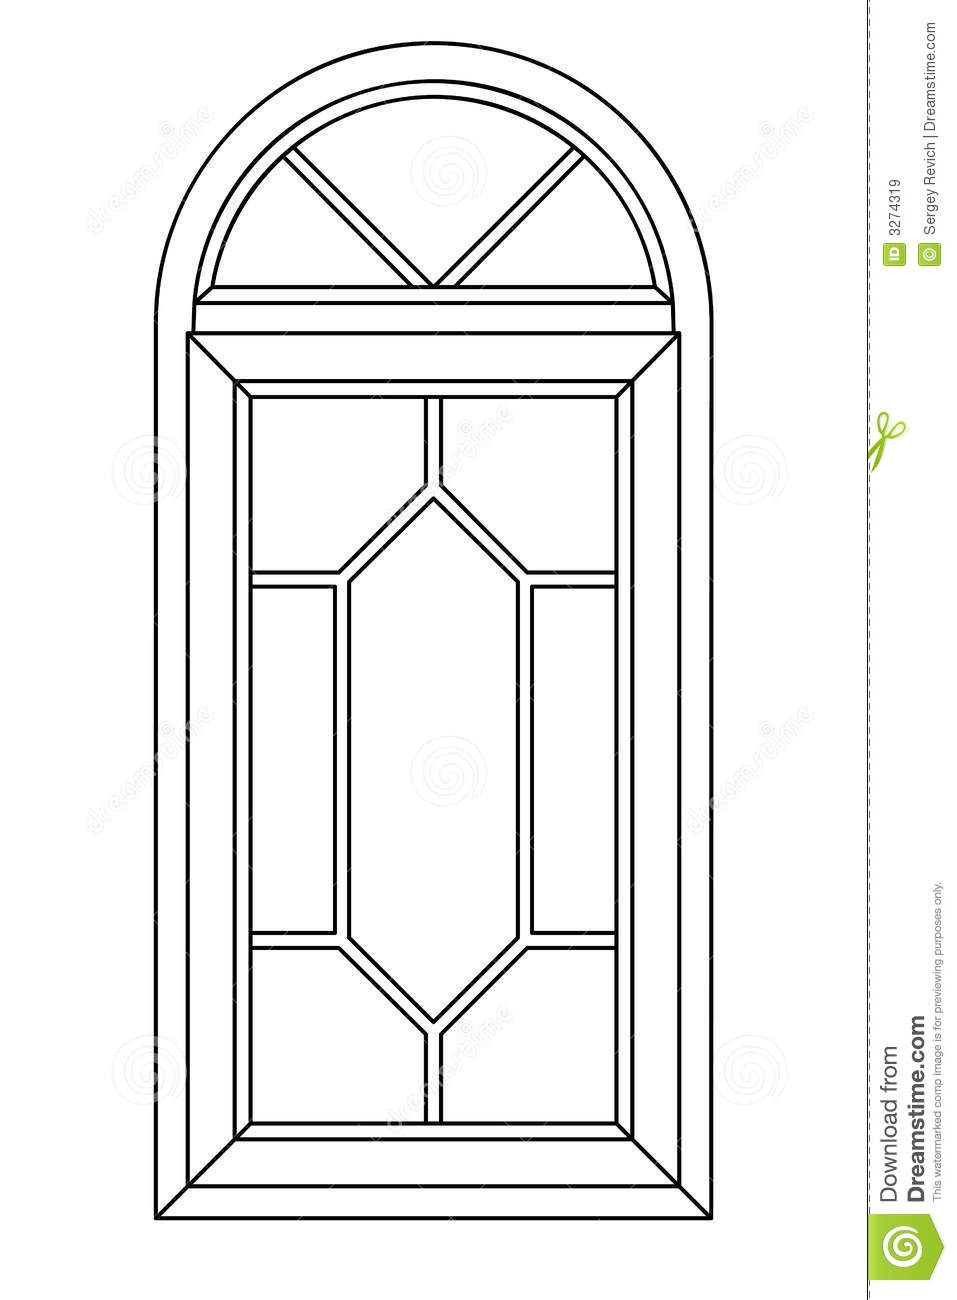 Exterior glass doors business - Planimetric Arch Window 3 Royalty Free Stock Images Image 3274319